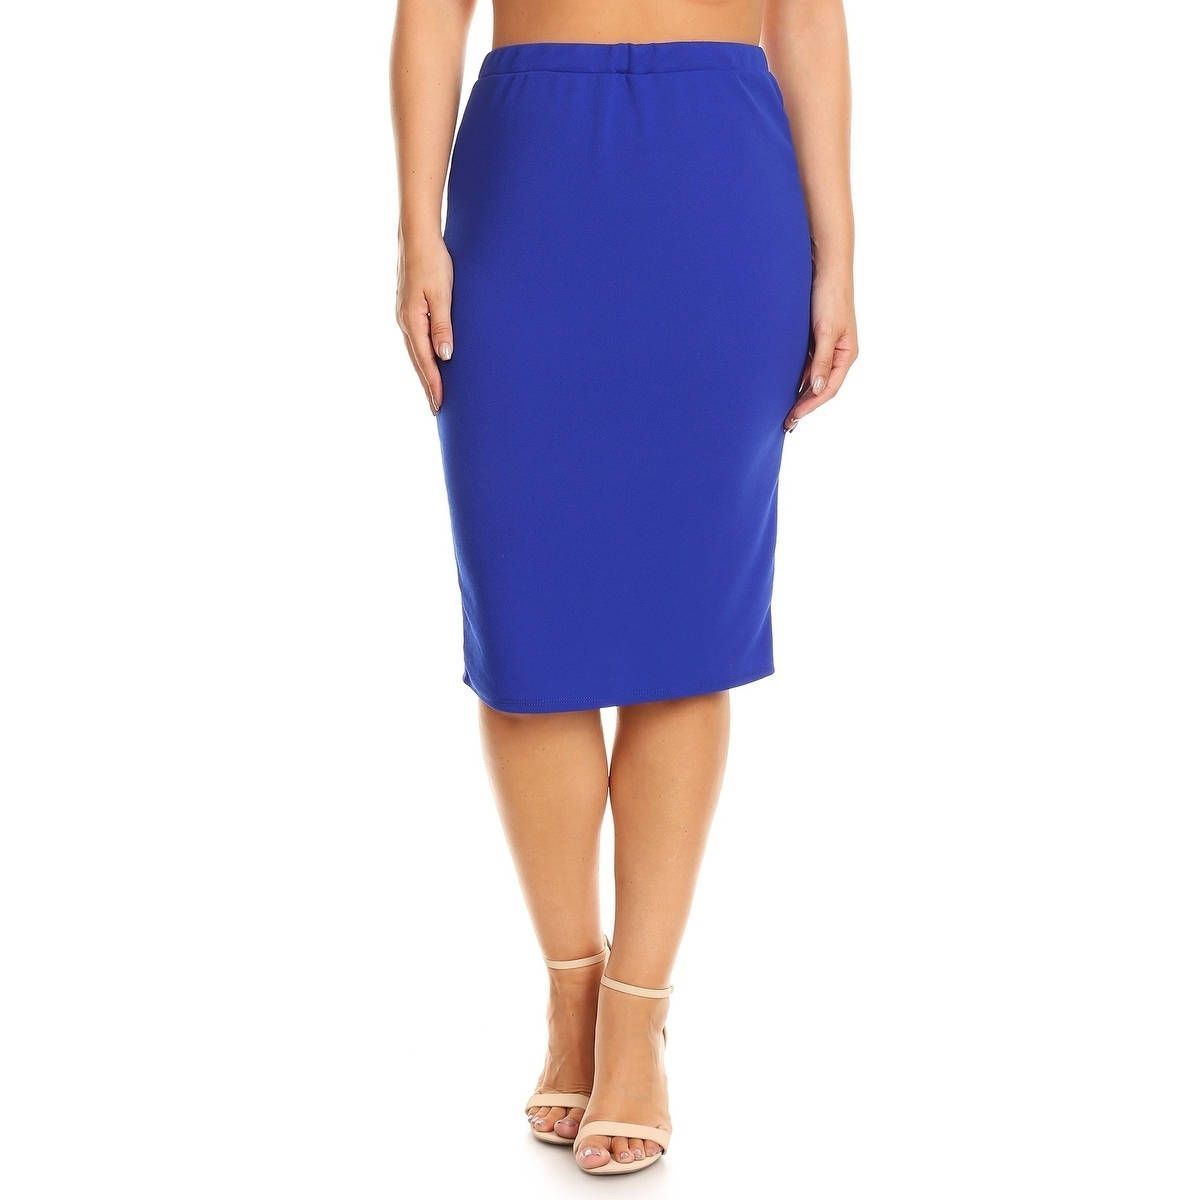 1200x1200 Moa Collection Women's Plus Size Solid Pencil Silhouette Skirt